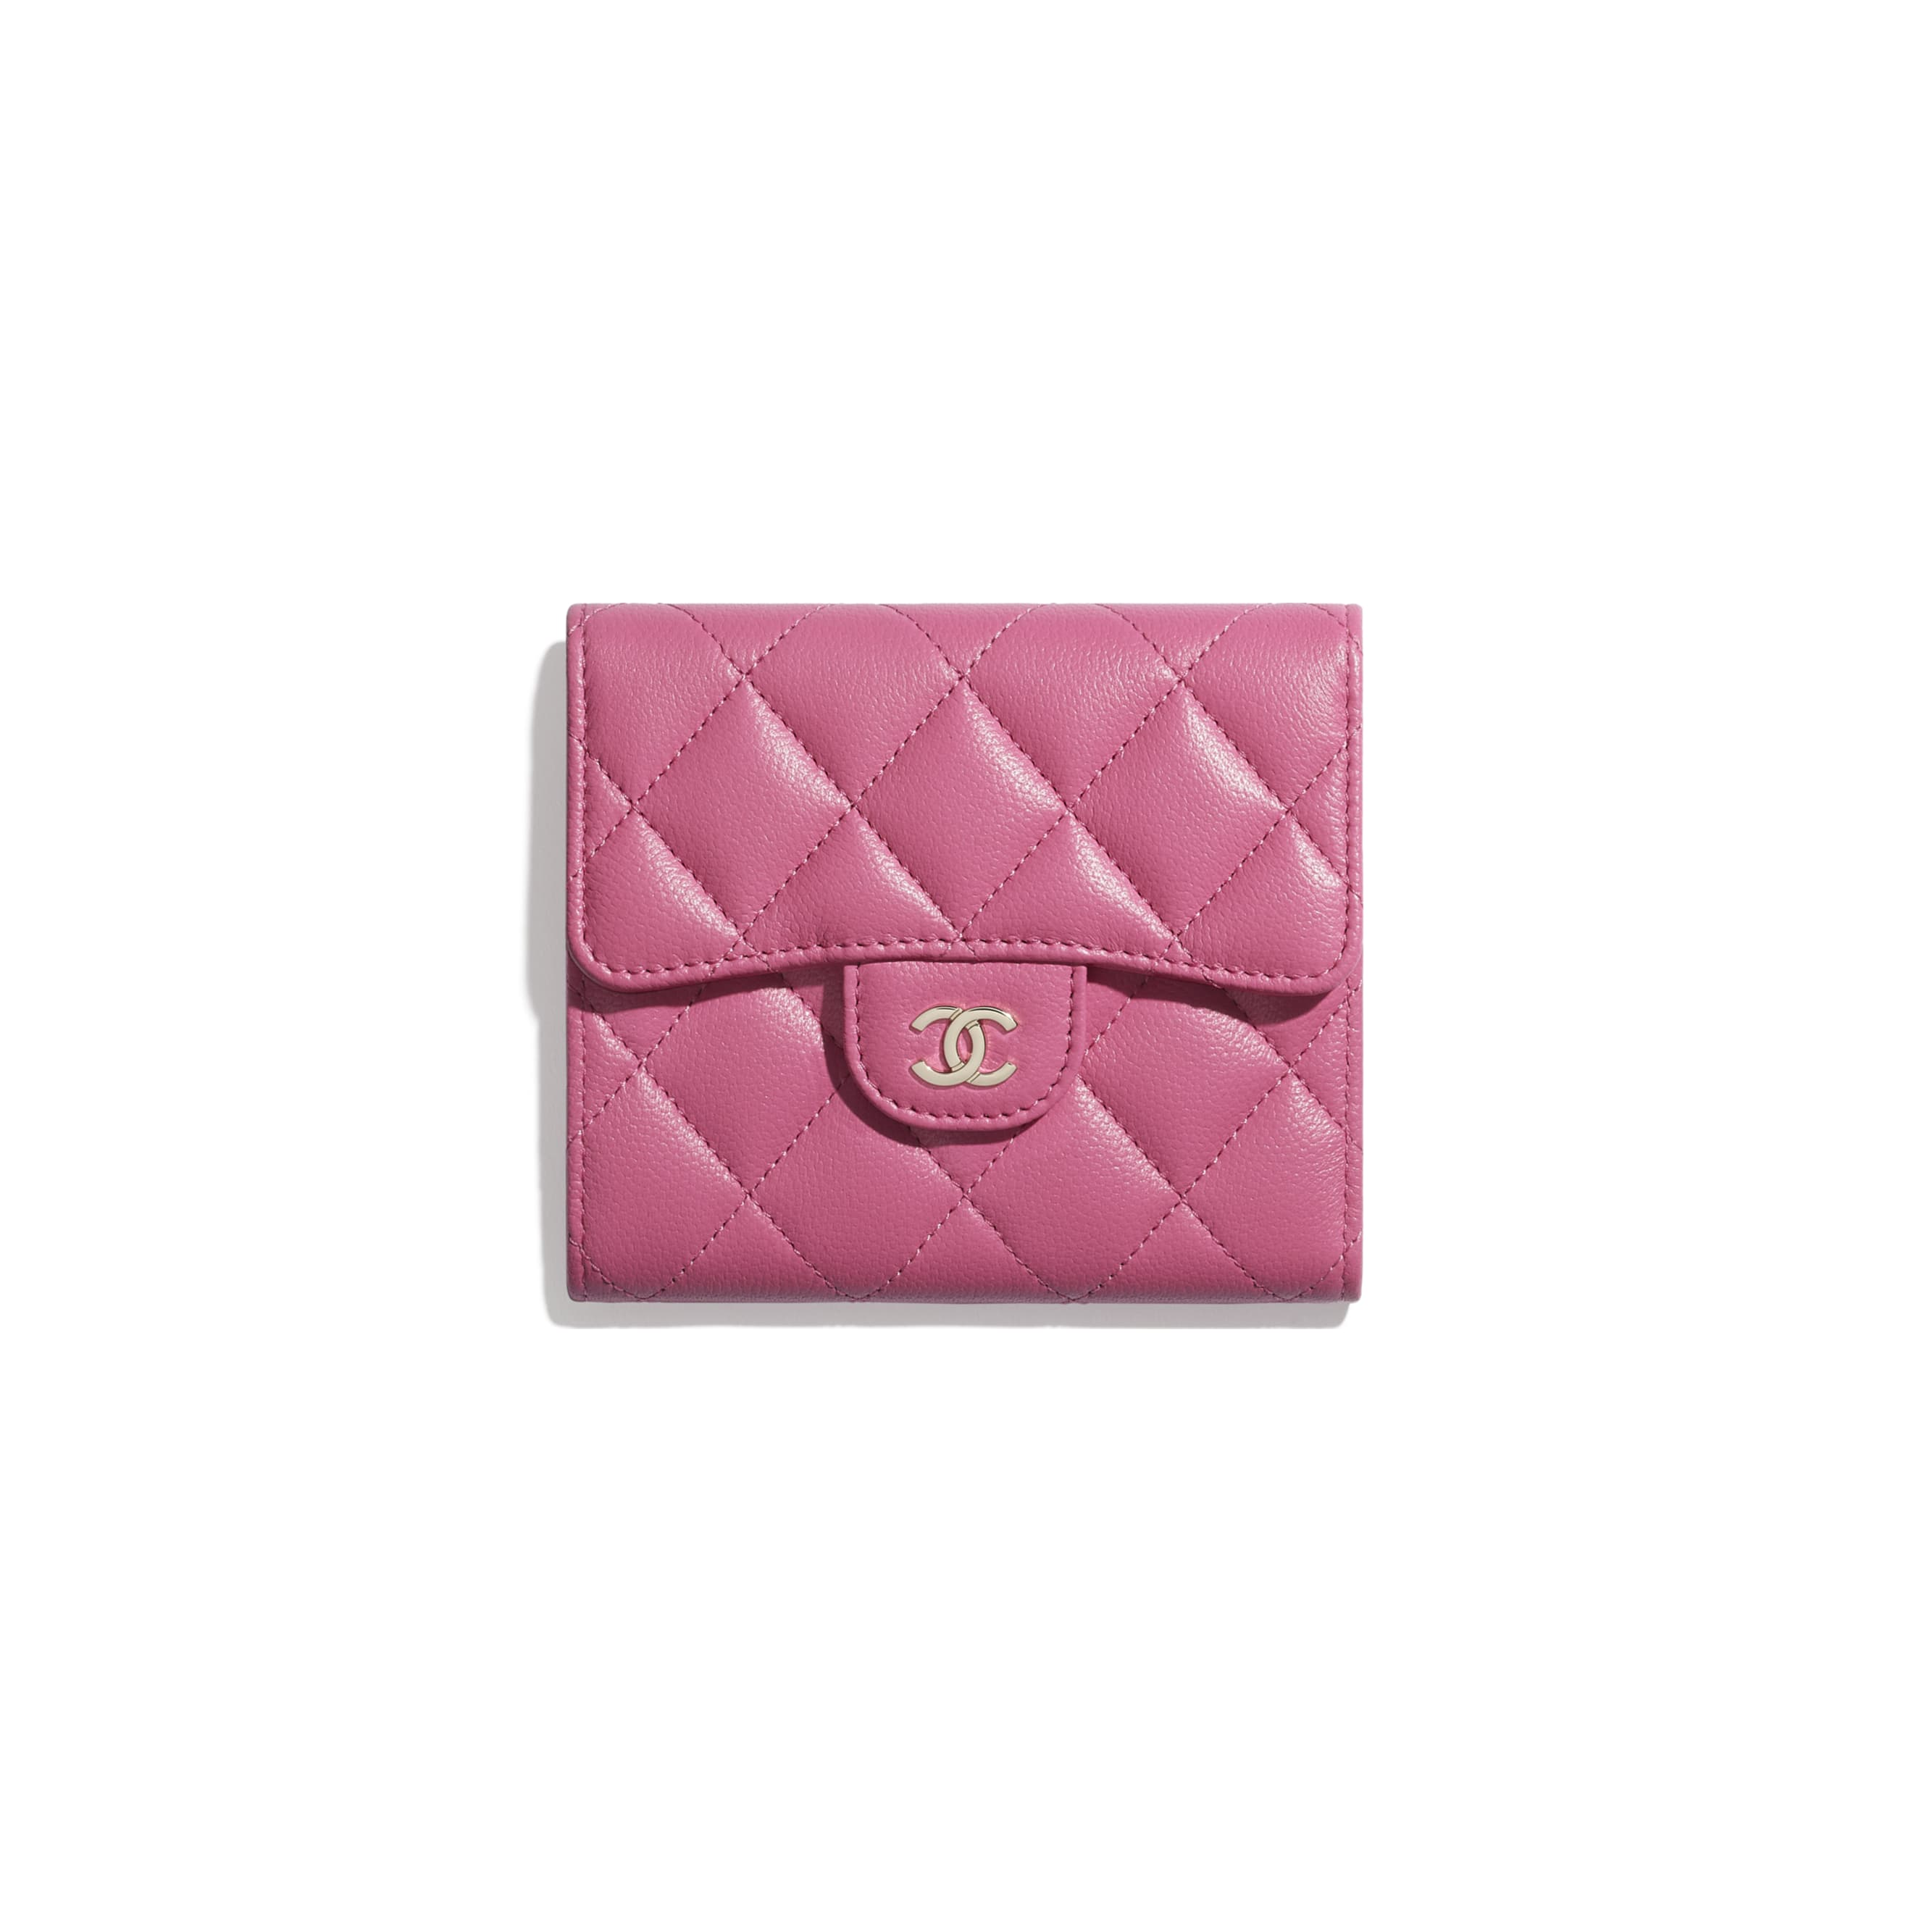 How Much Is Chanel? Chanel Price Guide how much is chanel wallet